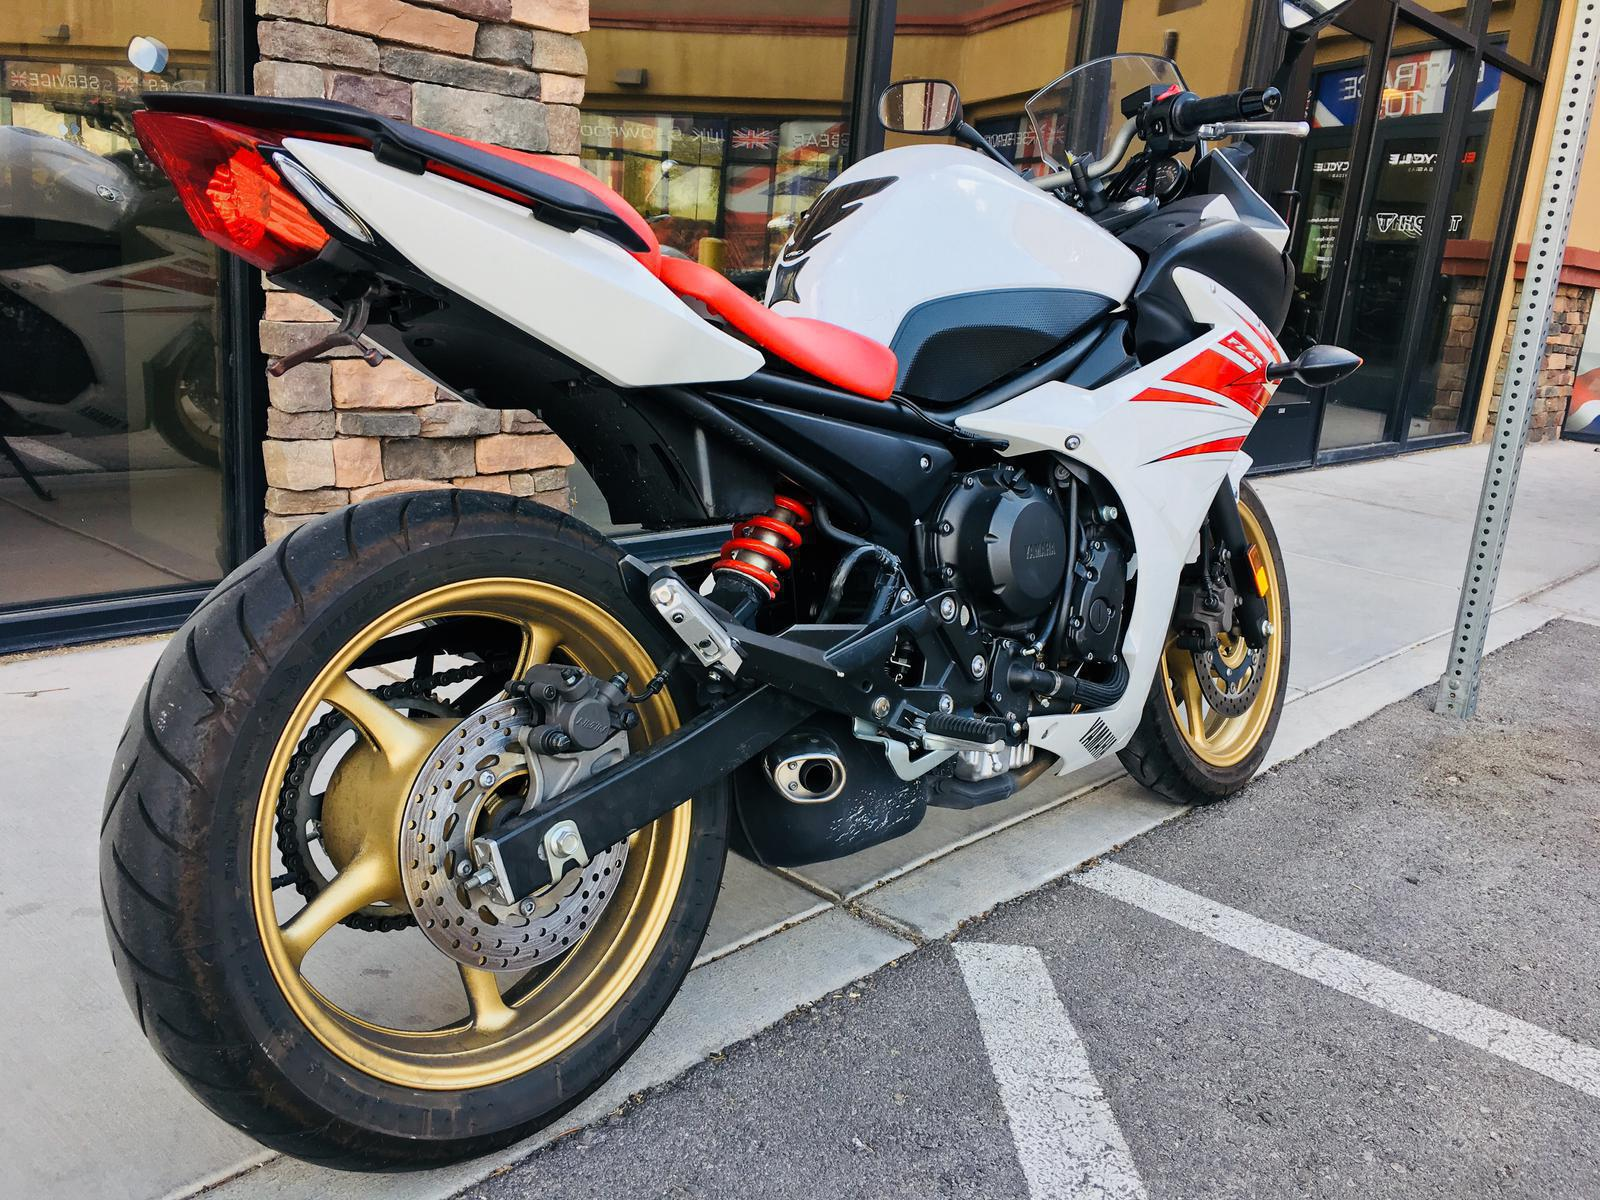 2010 Yamaha FZ6R for sale in Las Vegas, NV. Freedom Euro Cycle